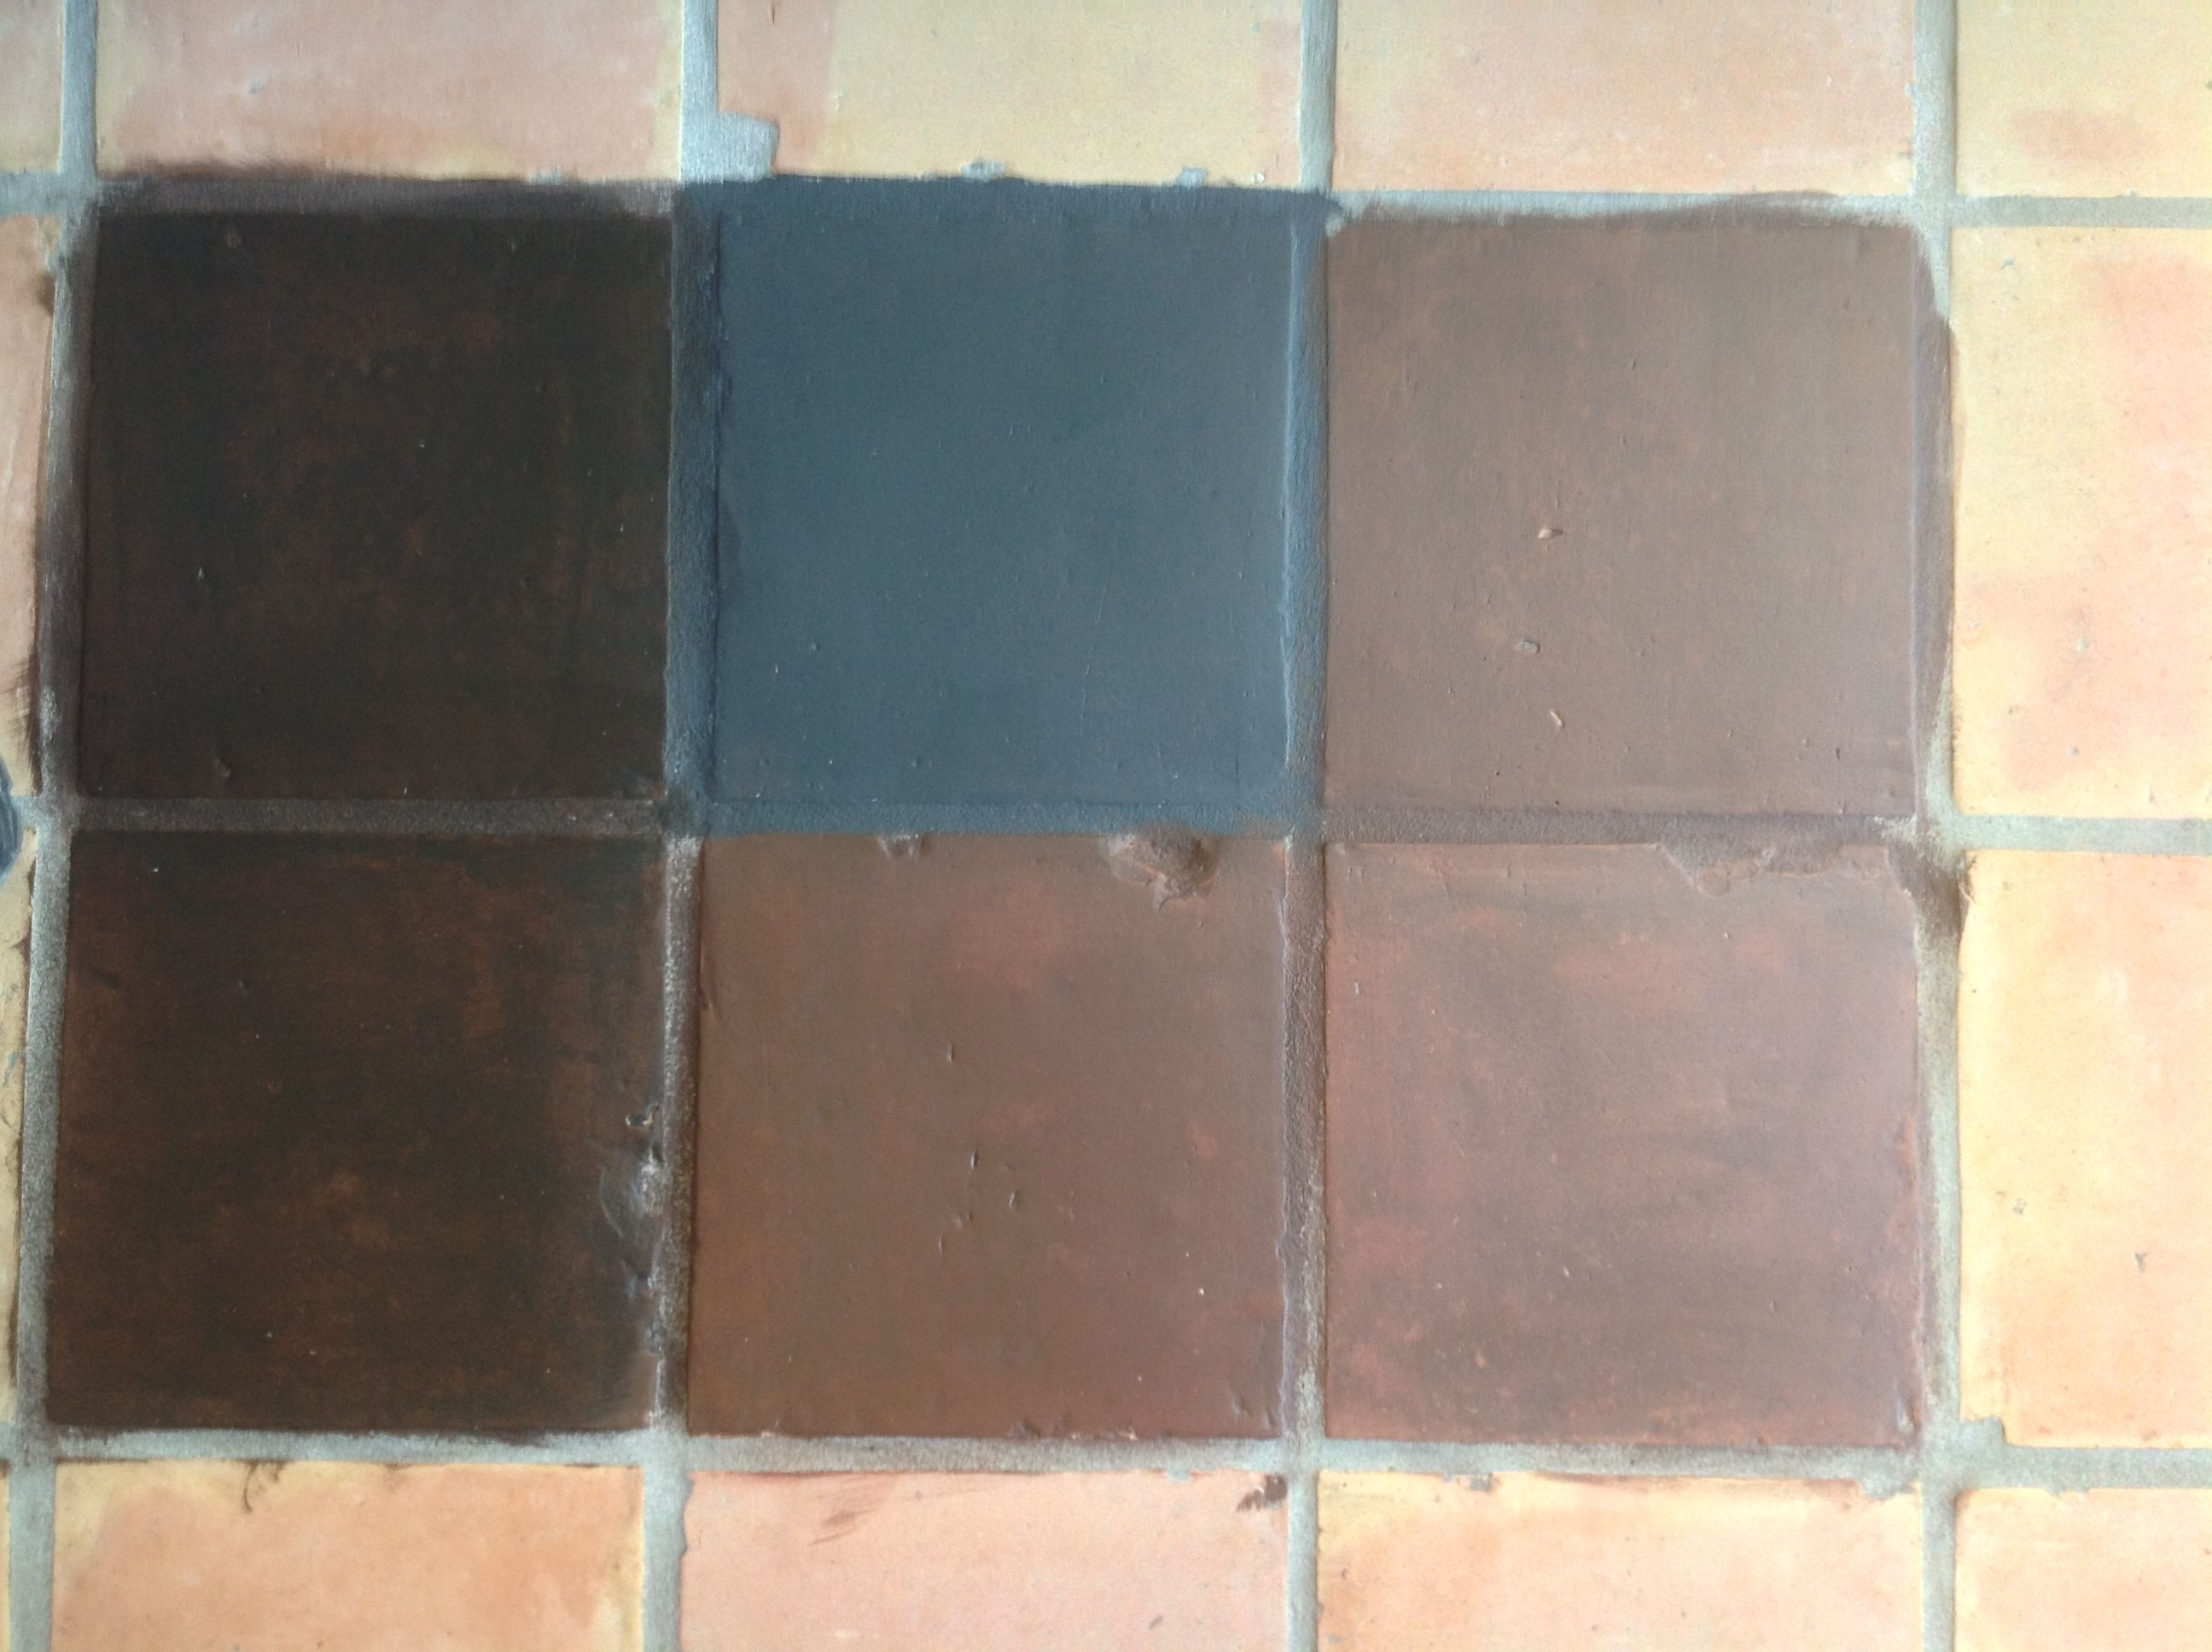 Can i paint terracotta floor tiles image collections home painting terracotta floor tiles images tile flooring design ideas saltillo tile dark stain for the home dailygadgetfo Image collections